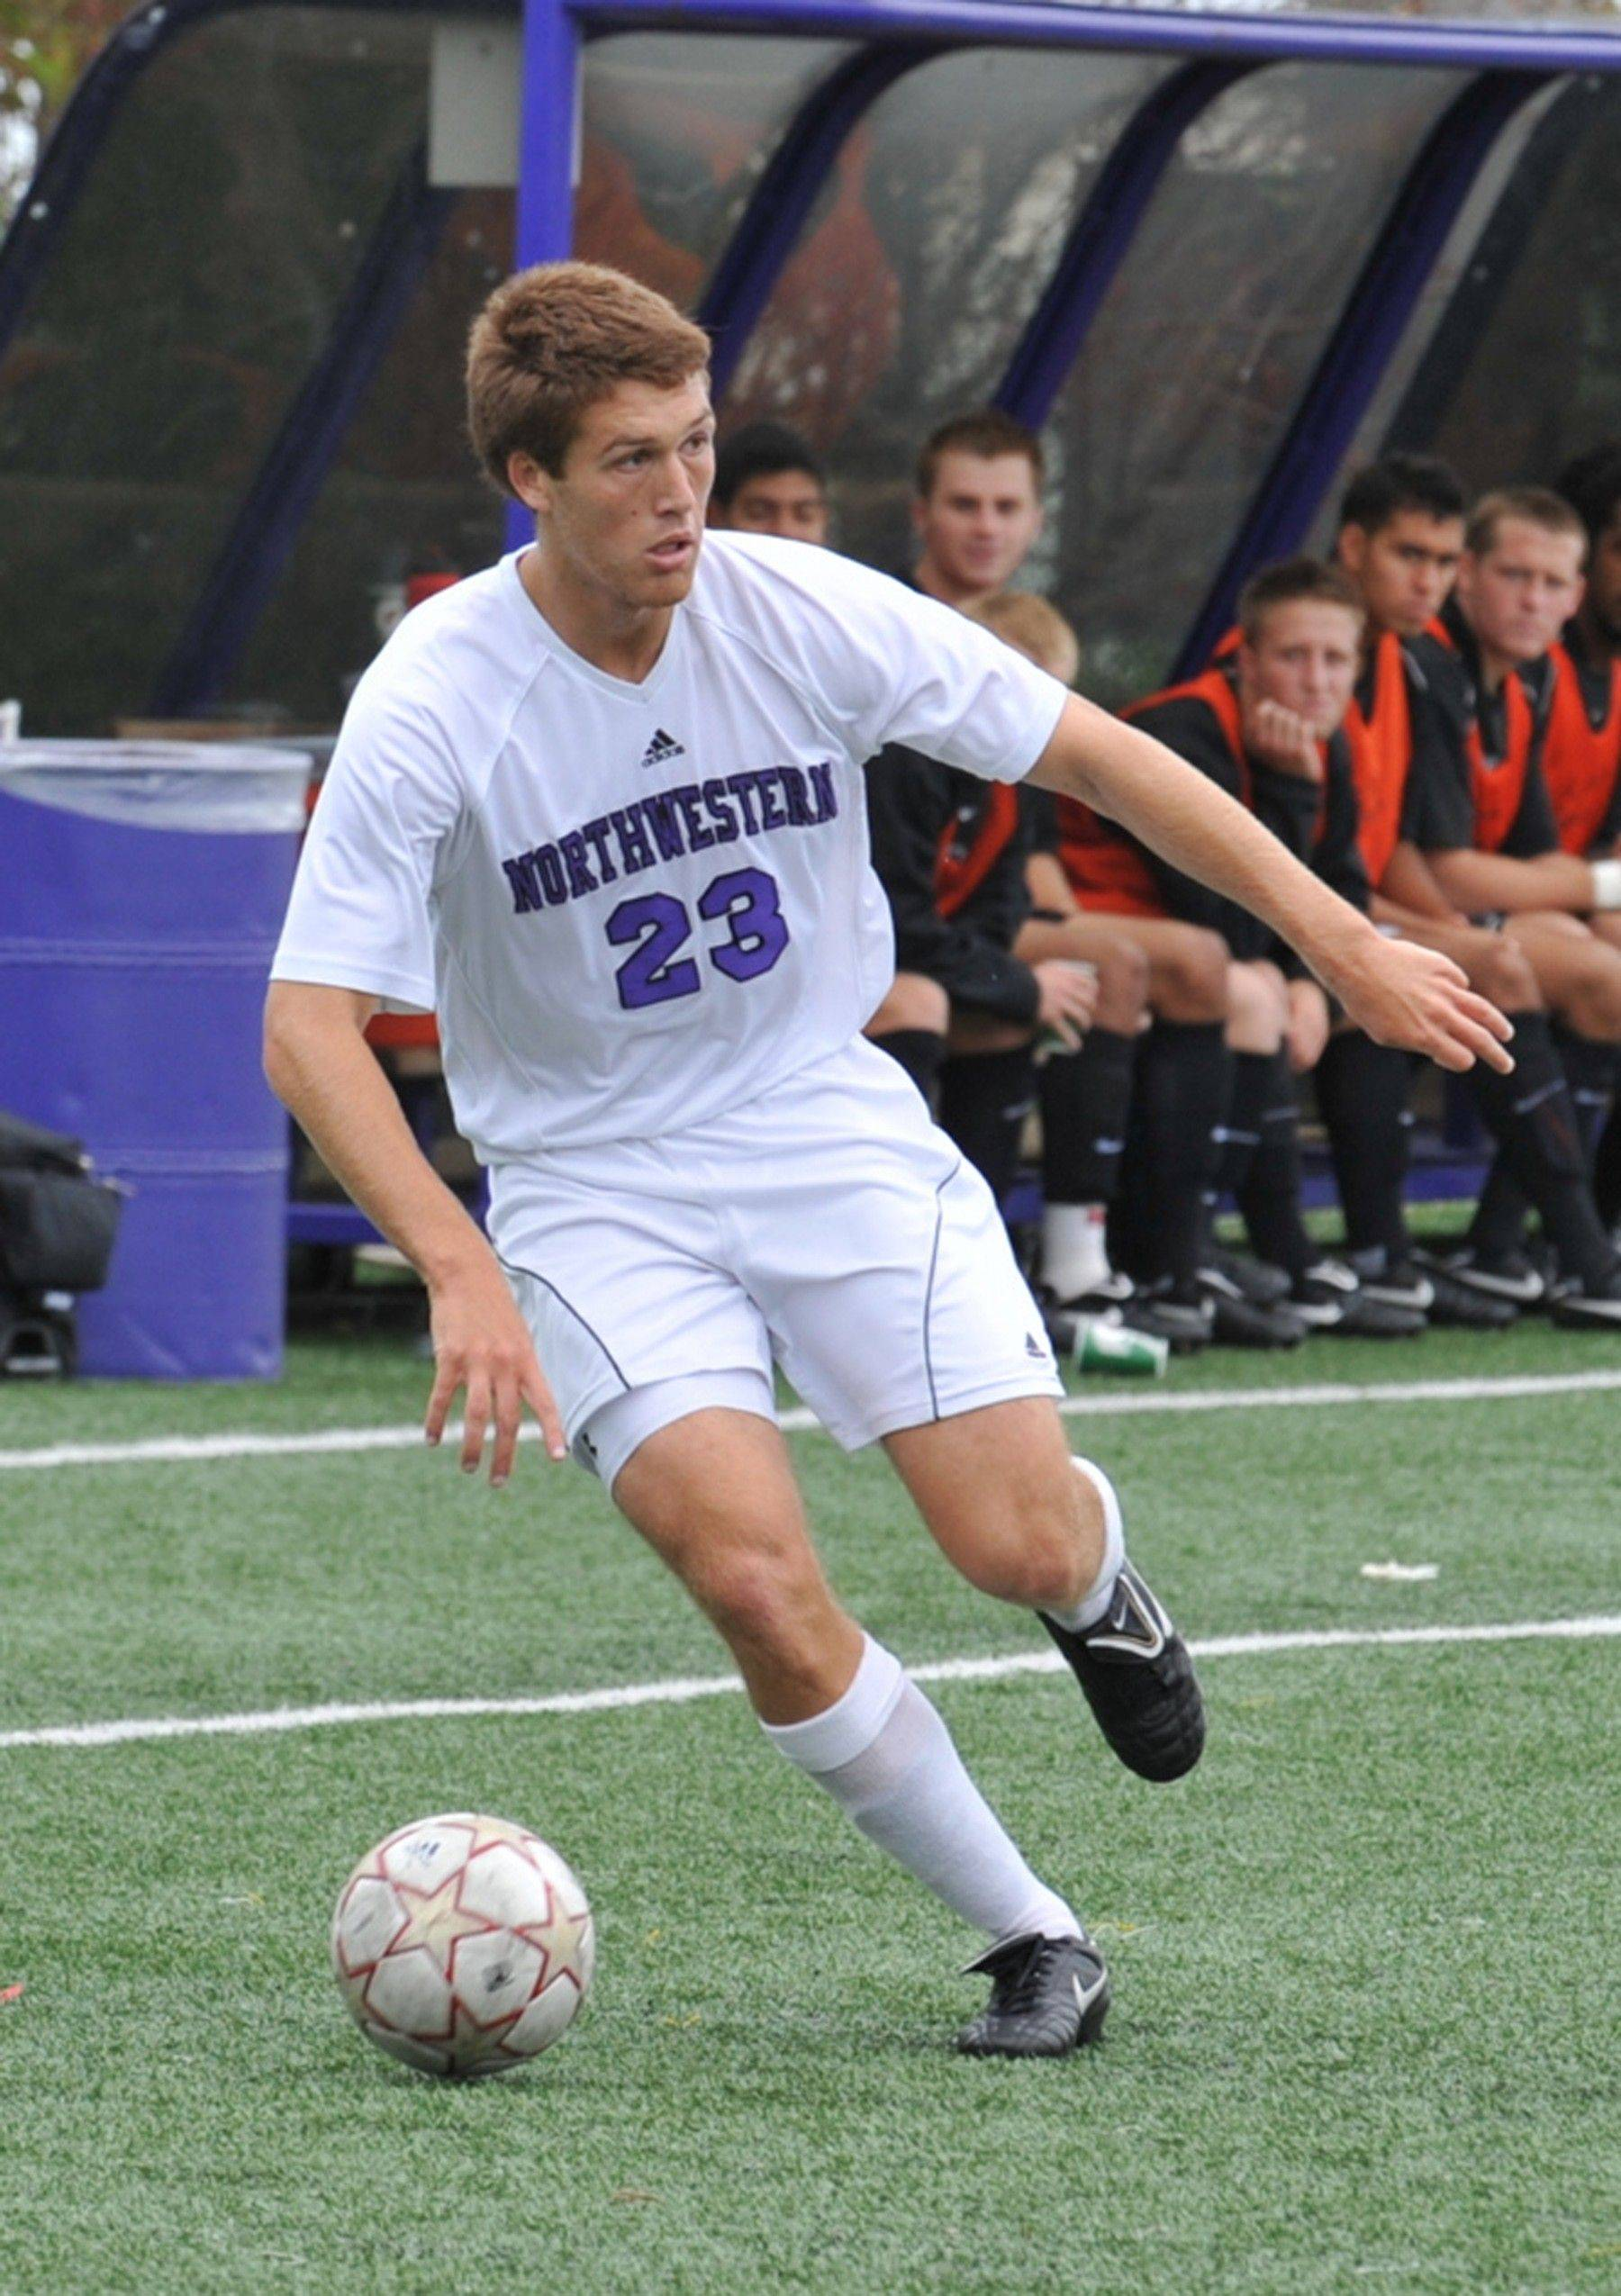 Matt Eliason finished his soccer career at Northwestern University's all-time leading scorer with 33 goals. Now the former Glenbard East soccer star is hoping to get noticed by MLS scouts and coaches. He was invited to last week's combine.